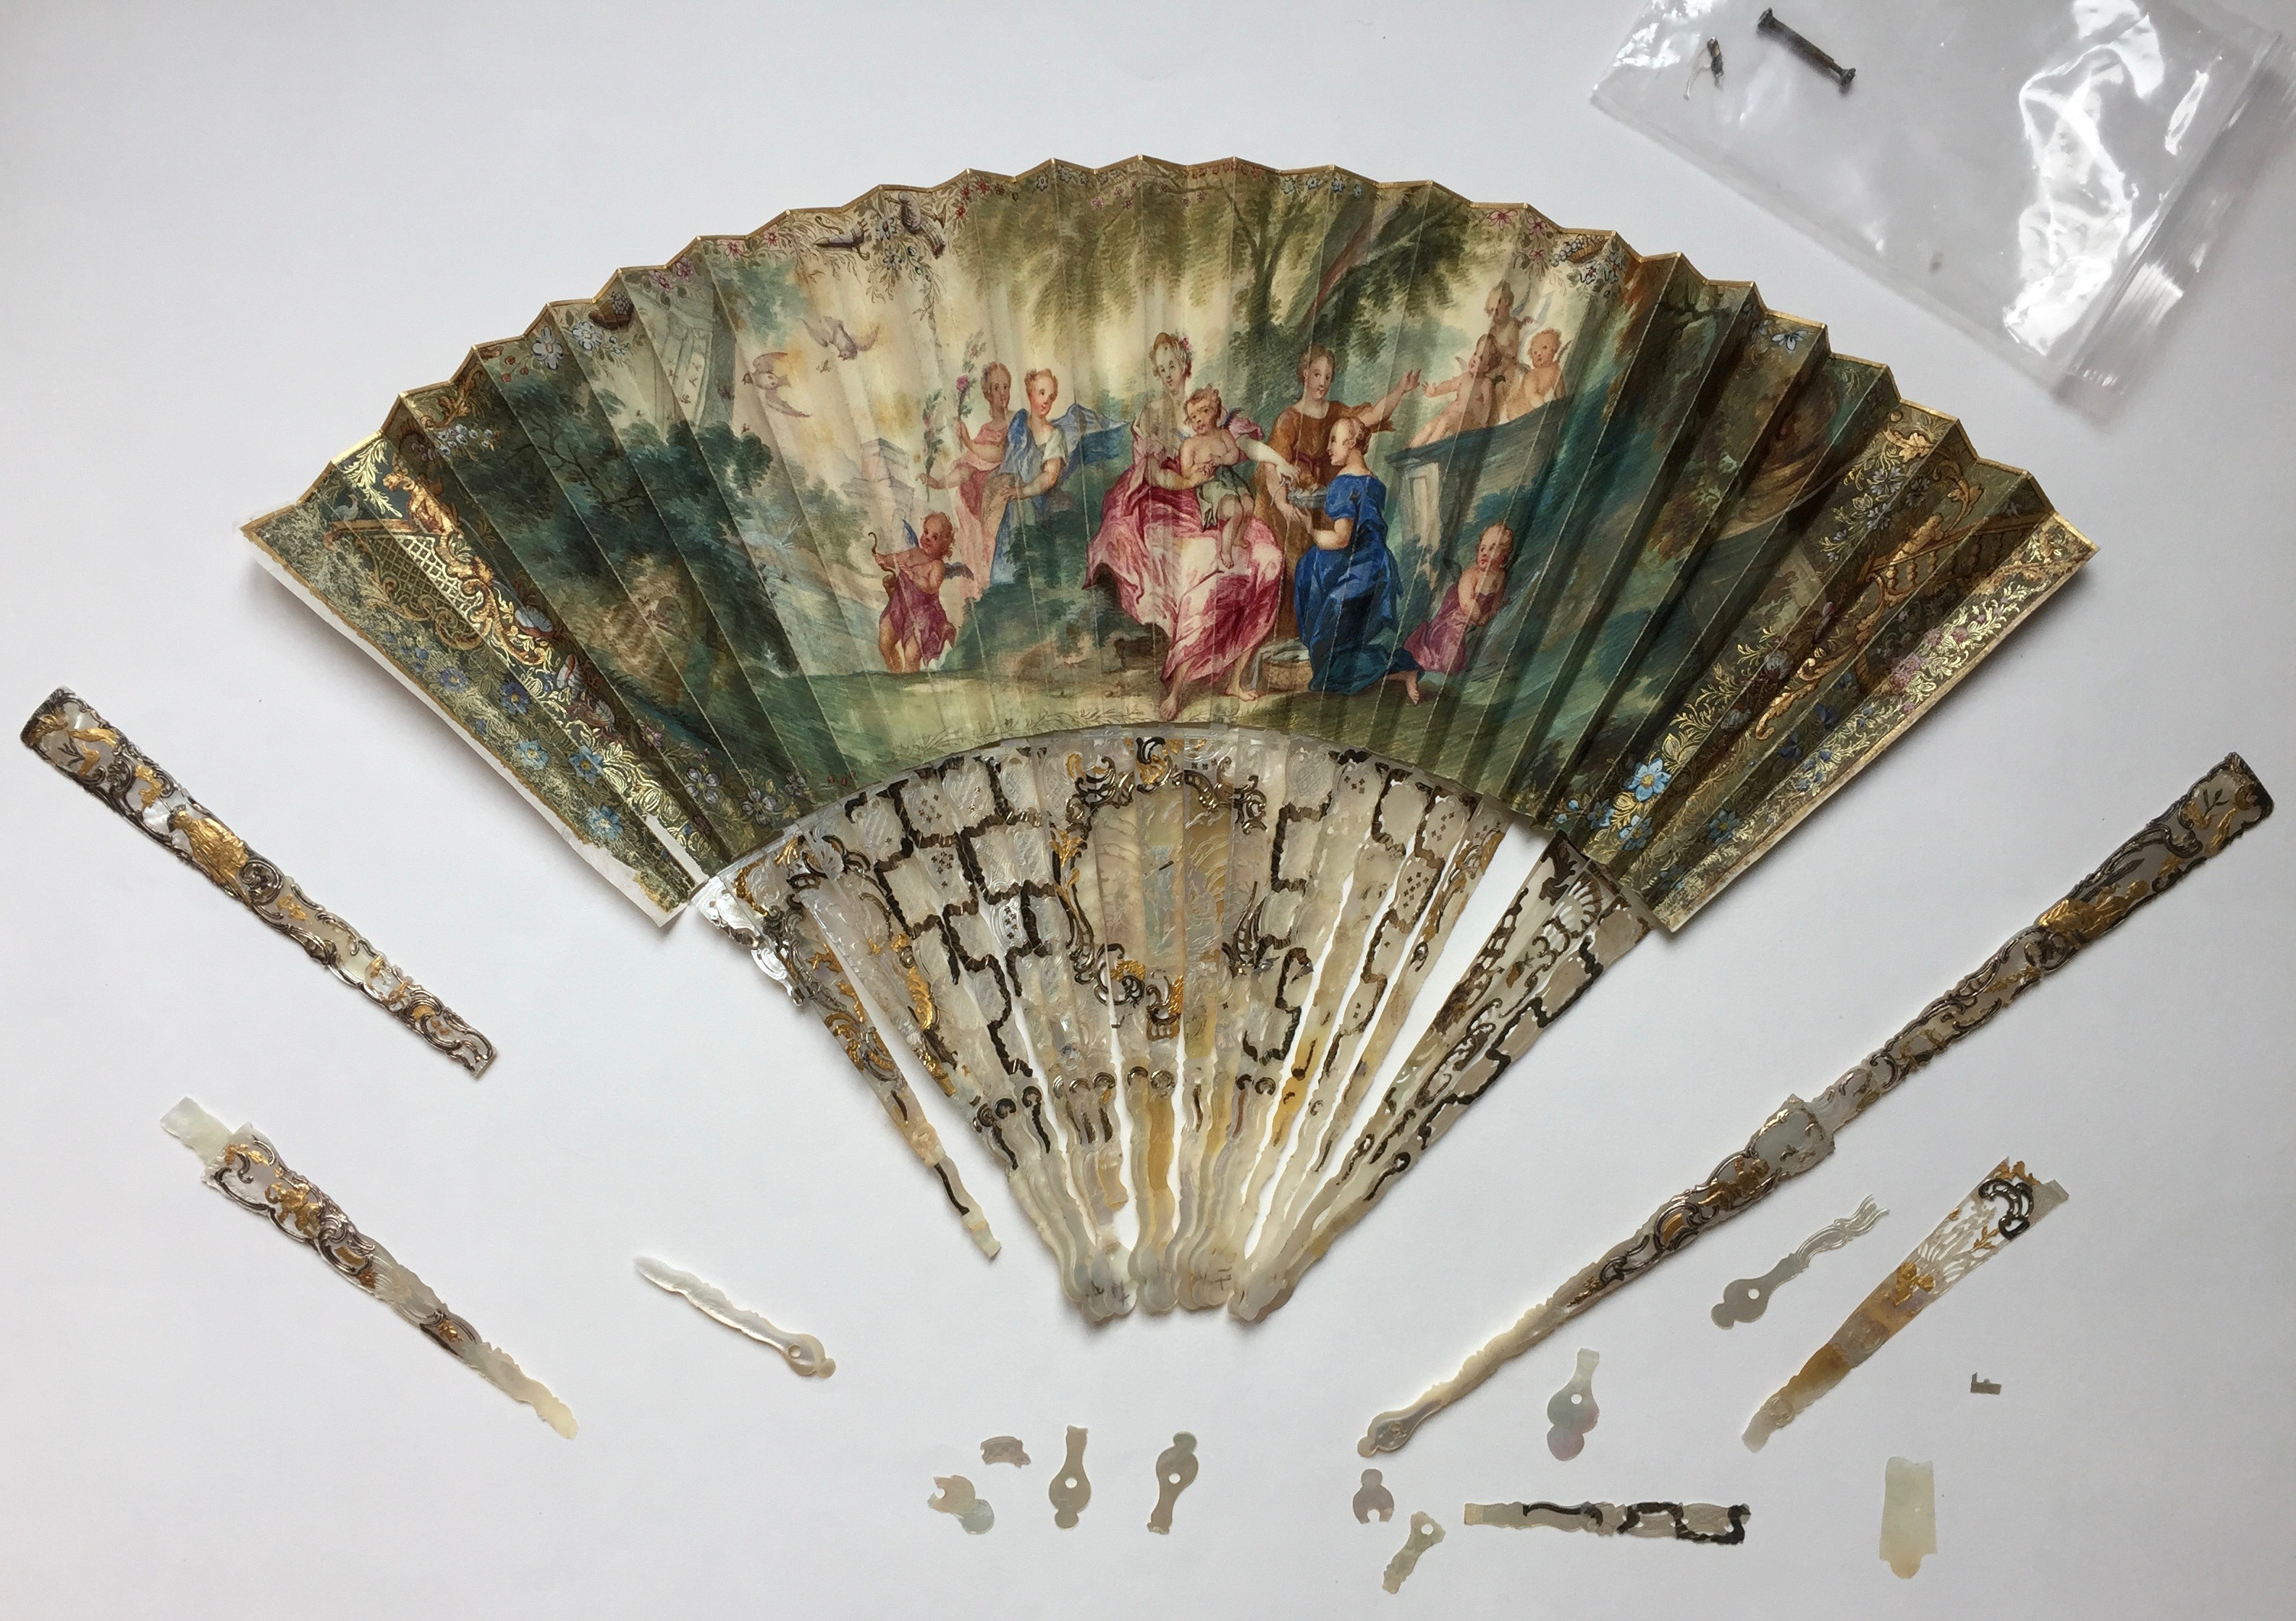 Fan before conservation mother of pearl